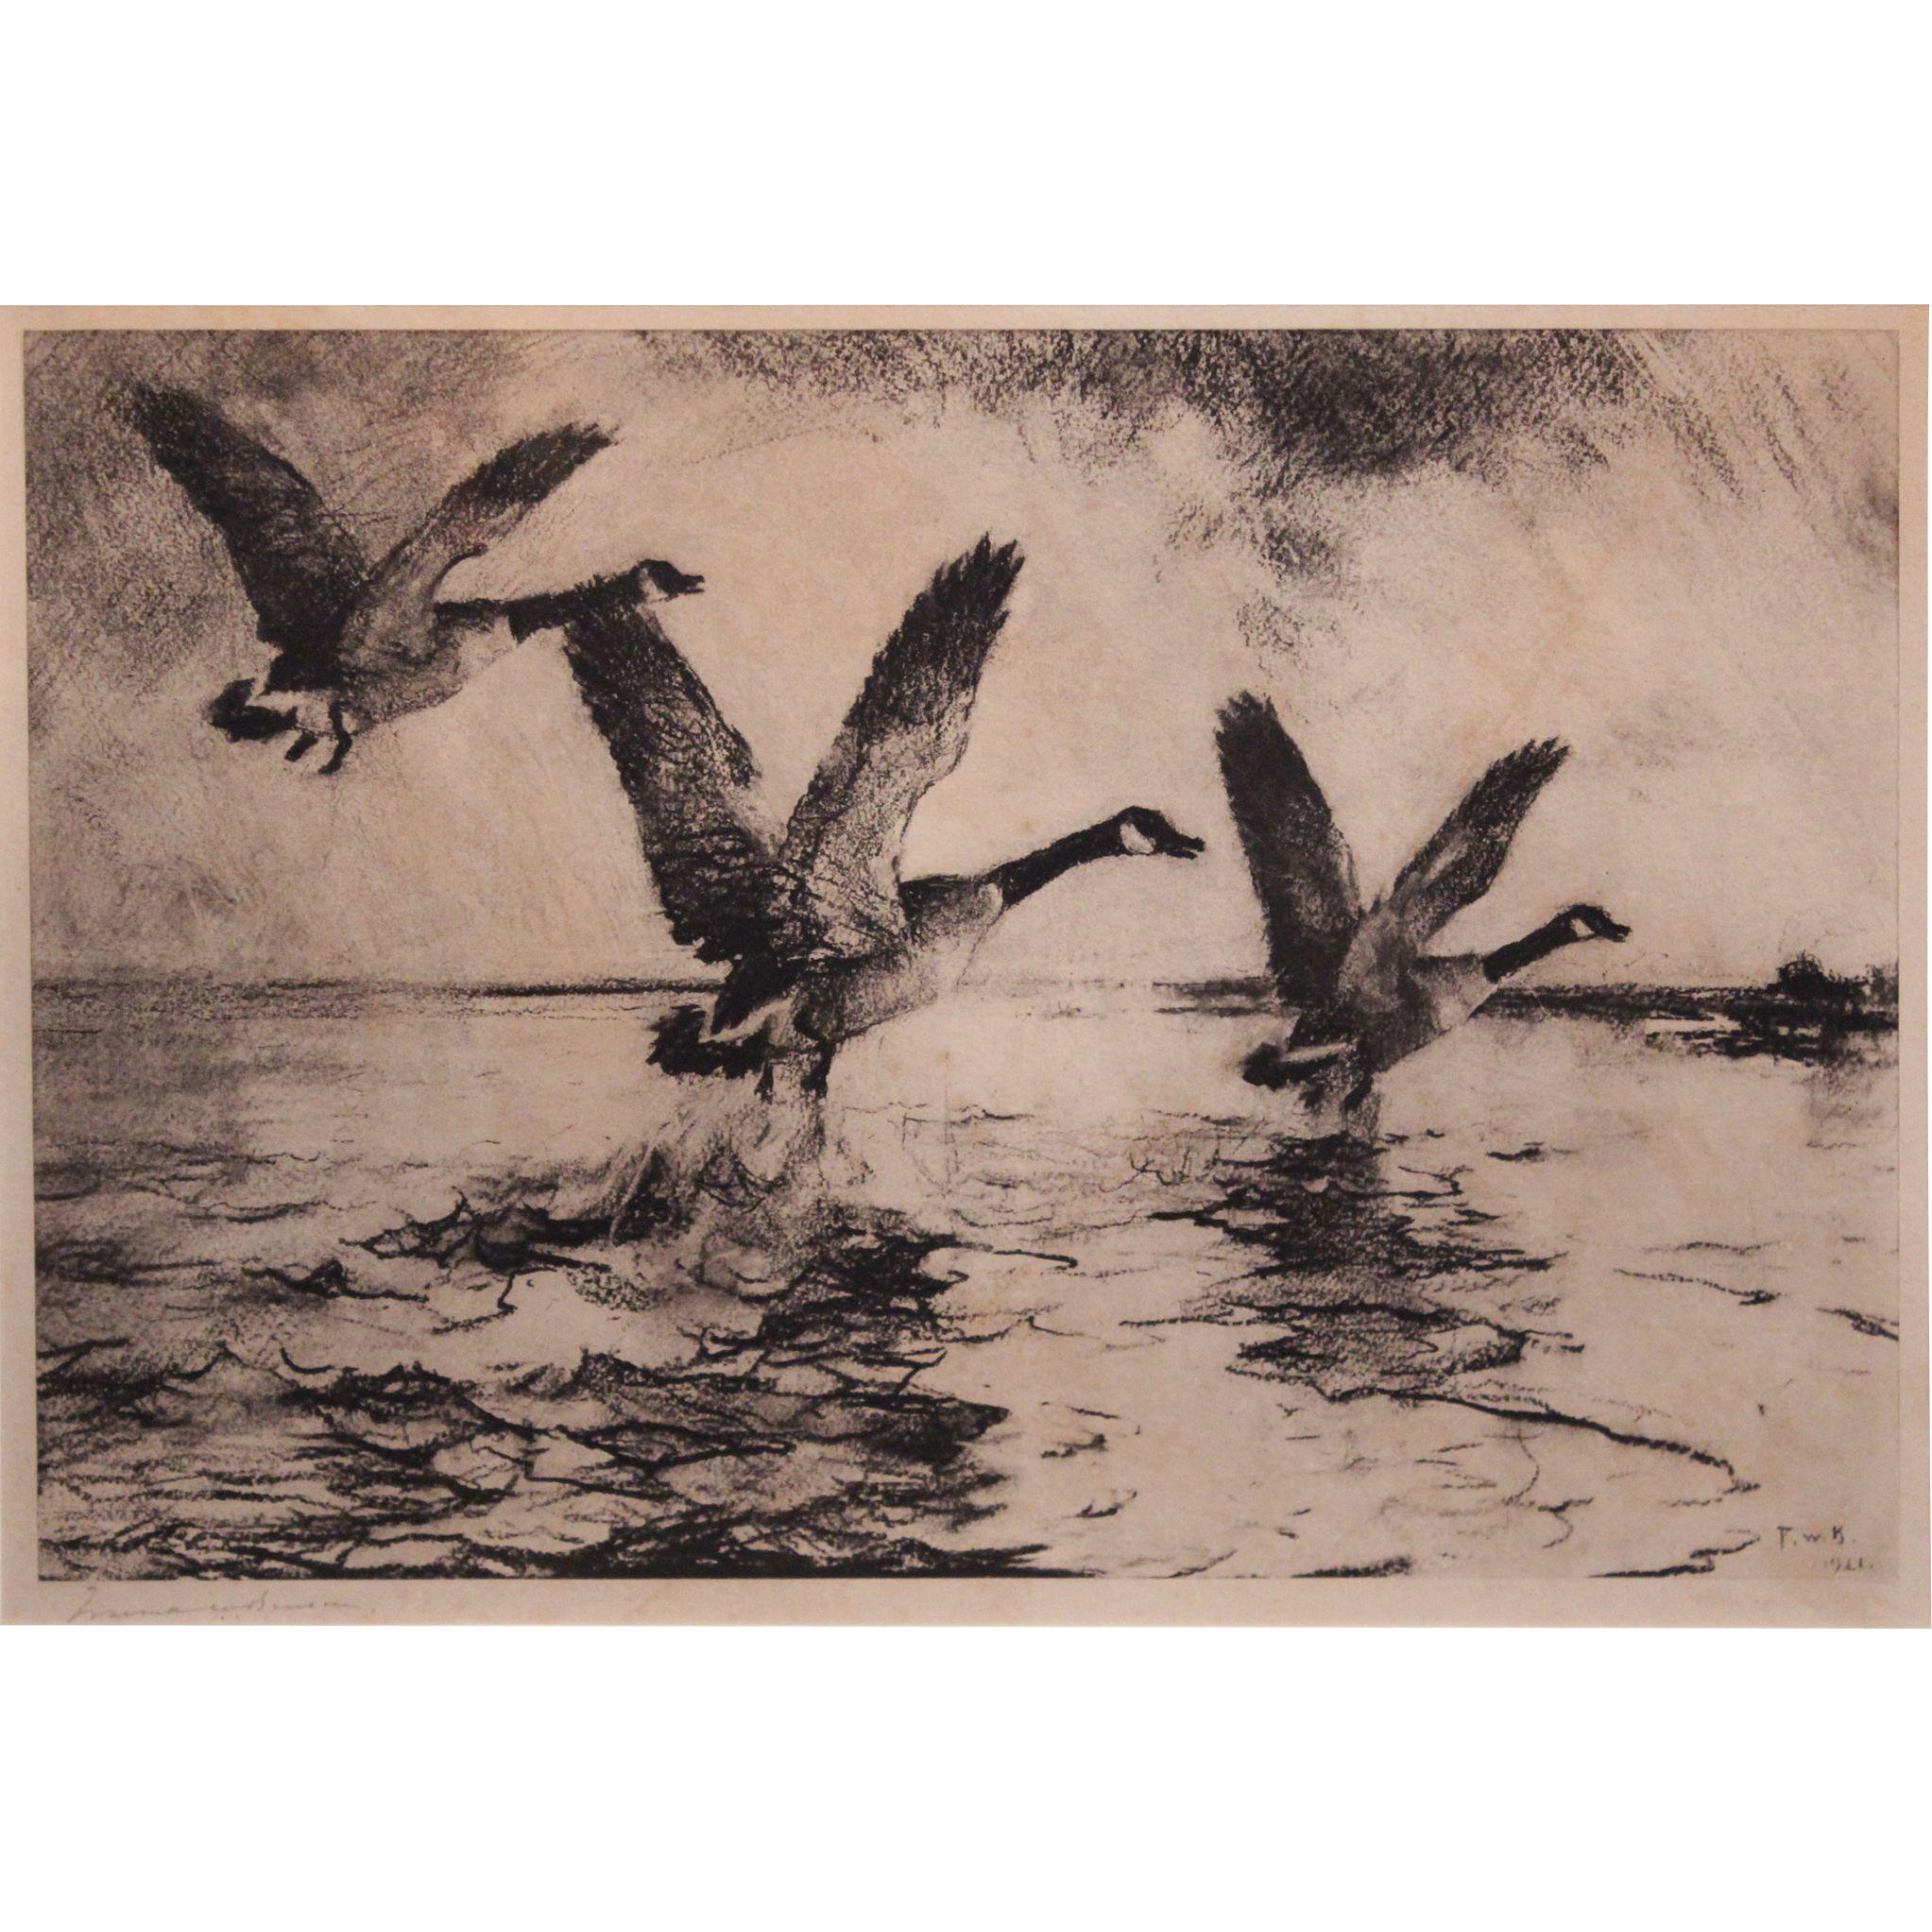 Frank Weston Benson Pencil Signed Etching - Canada Geese Flying